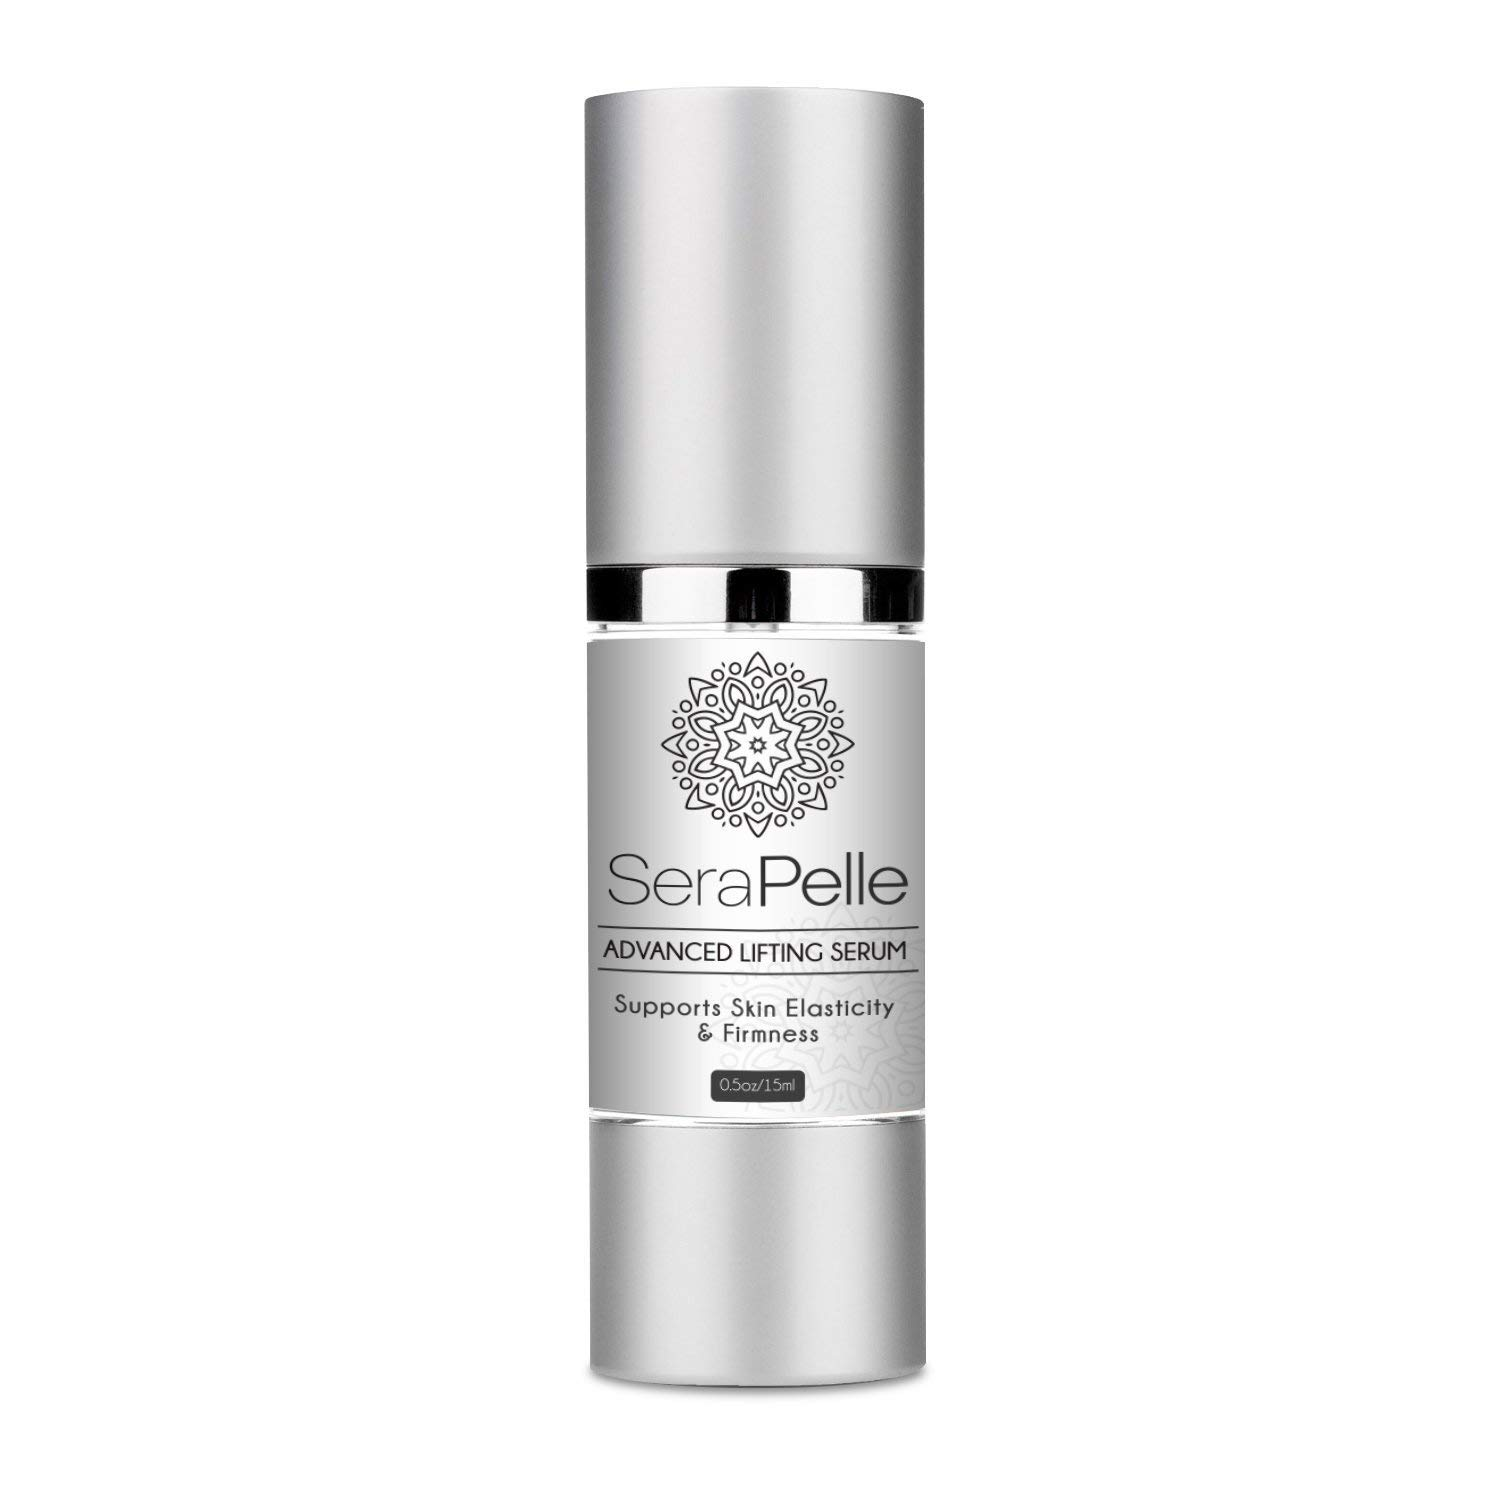 SeraPelle Advanced Lifting Serum 15ml/0.5oz Support Skin Elasticity and Firmness- Even Complexion and Brighten Overall Skintone